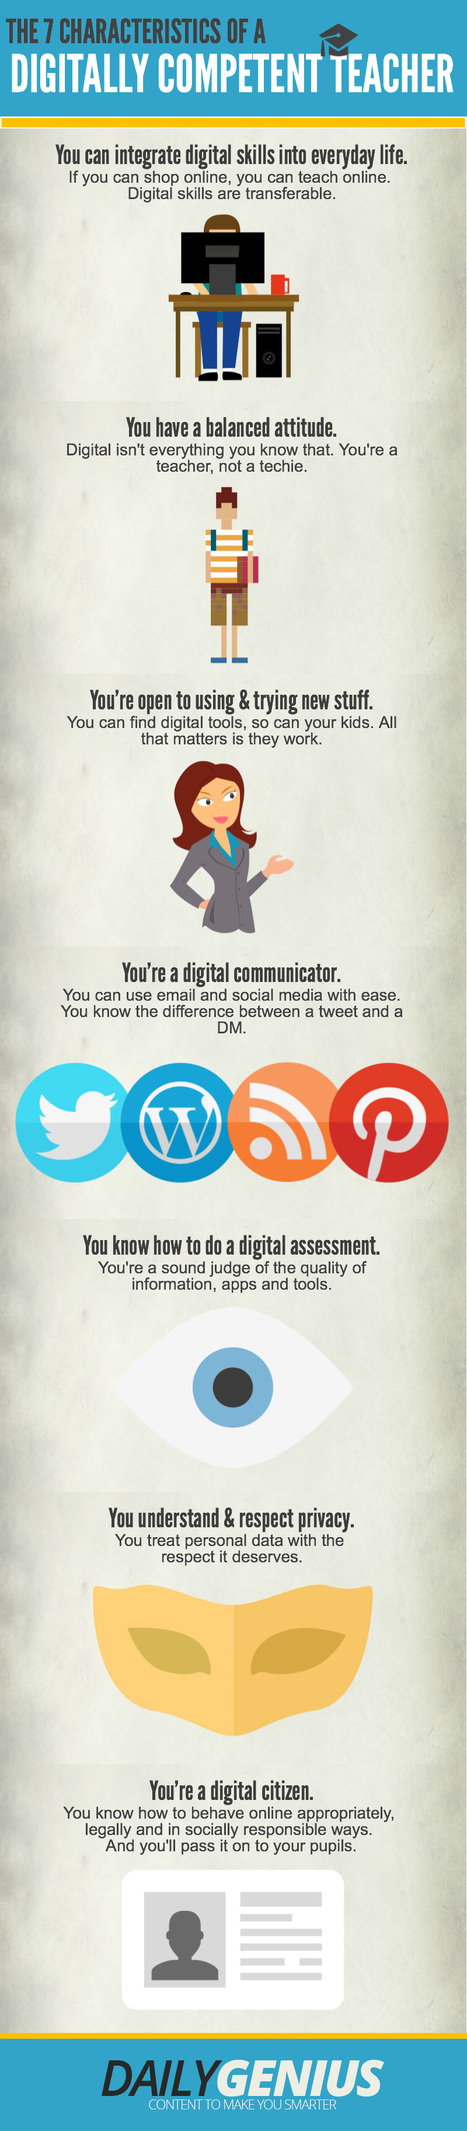 The Characteristics of a Digitally Competent Teacher Infographic - e-Learning Infographics | Technology in Art And Education | Scoop.it